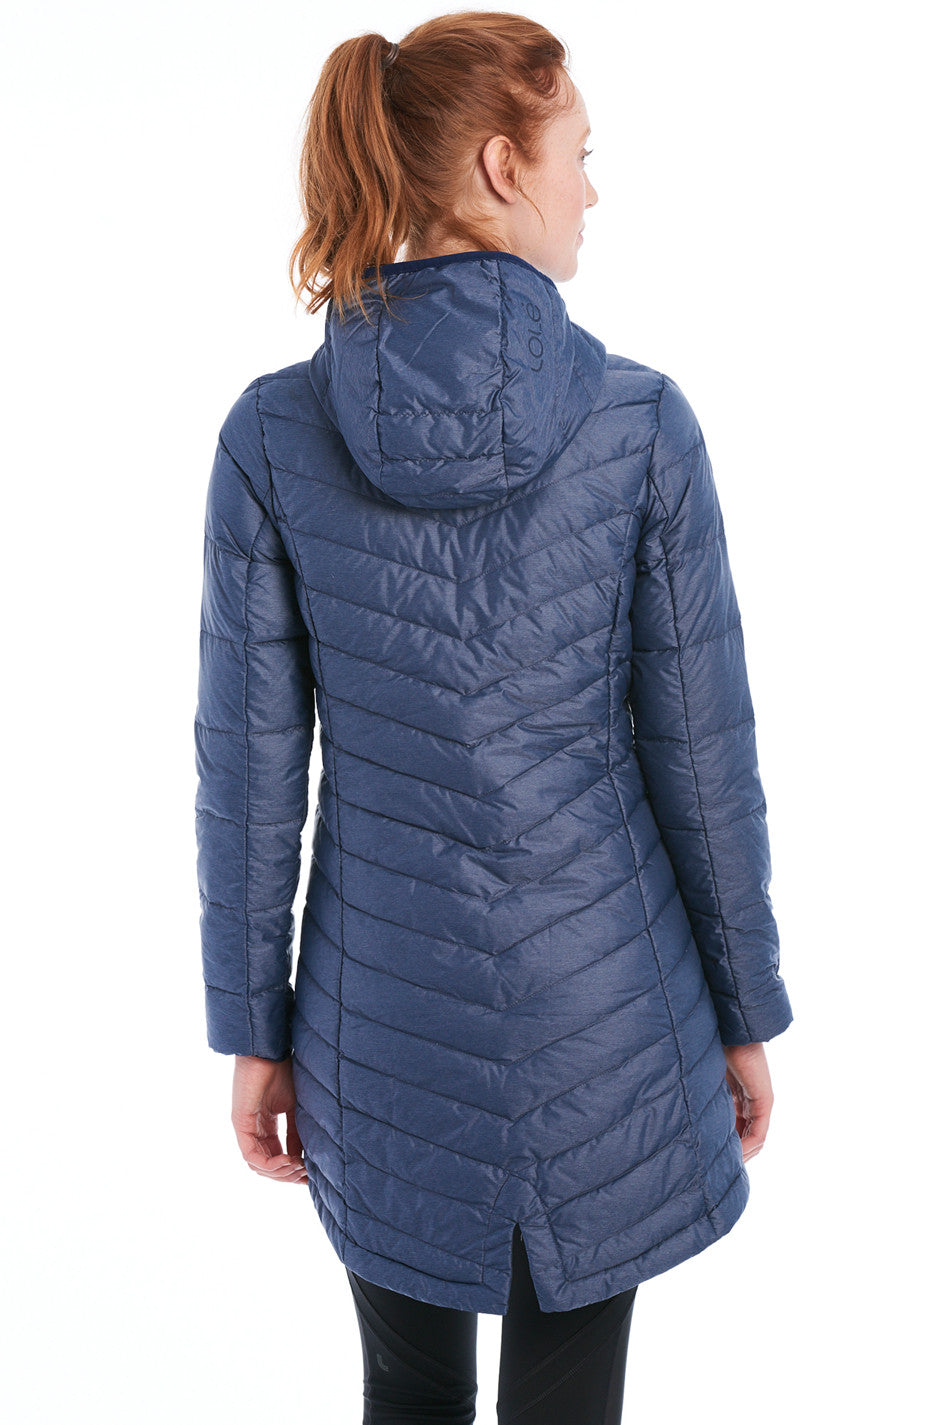 Women S Outerwear Tagged Quot Lole Quot Outdoors Oriented